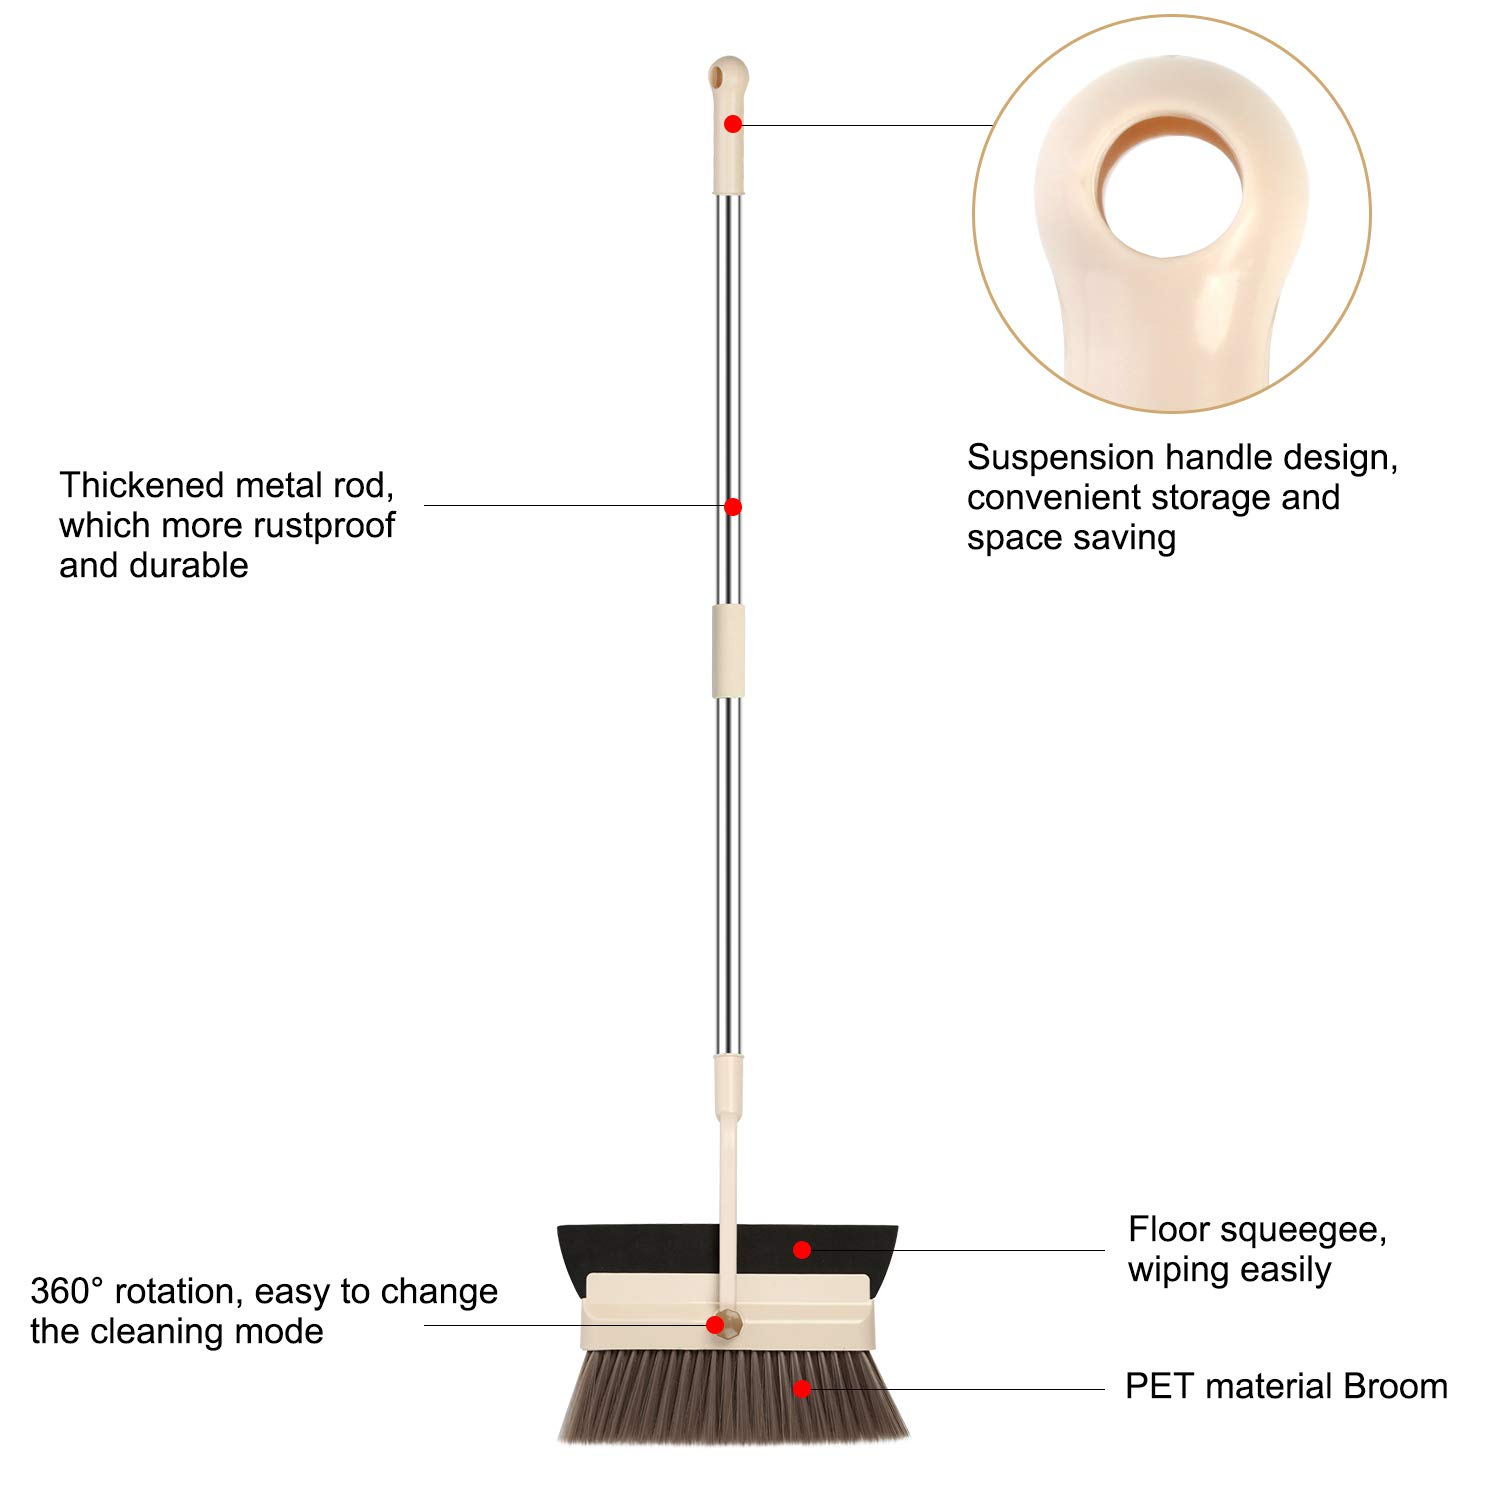 MOCREO Dustpan and Broom and Floor Squeegee Set, Dustpan Cleans Broom Combo with Long Handle For Home Kitchen Room/Office/Lobby Floor, Use Upright Stand Up Dustpan Broom & Squeegee Set by MOCREO (Image #6)